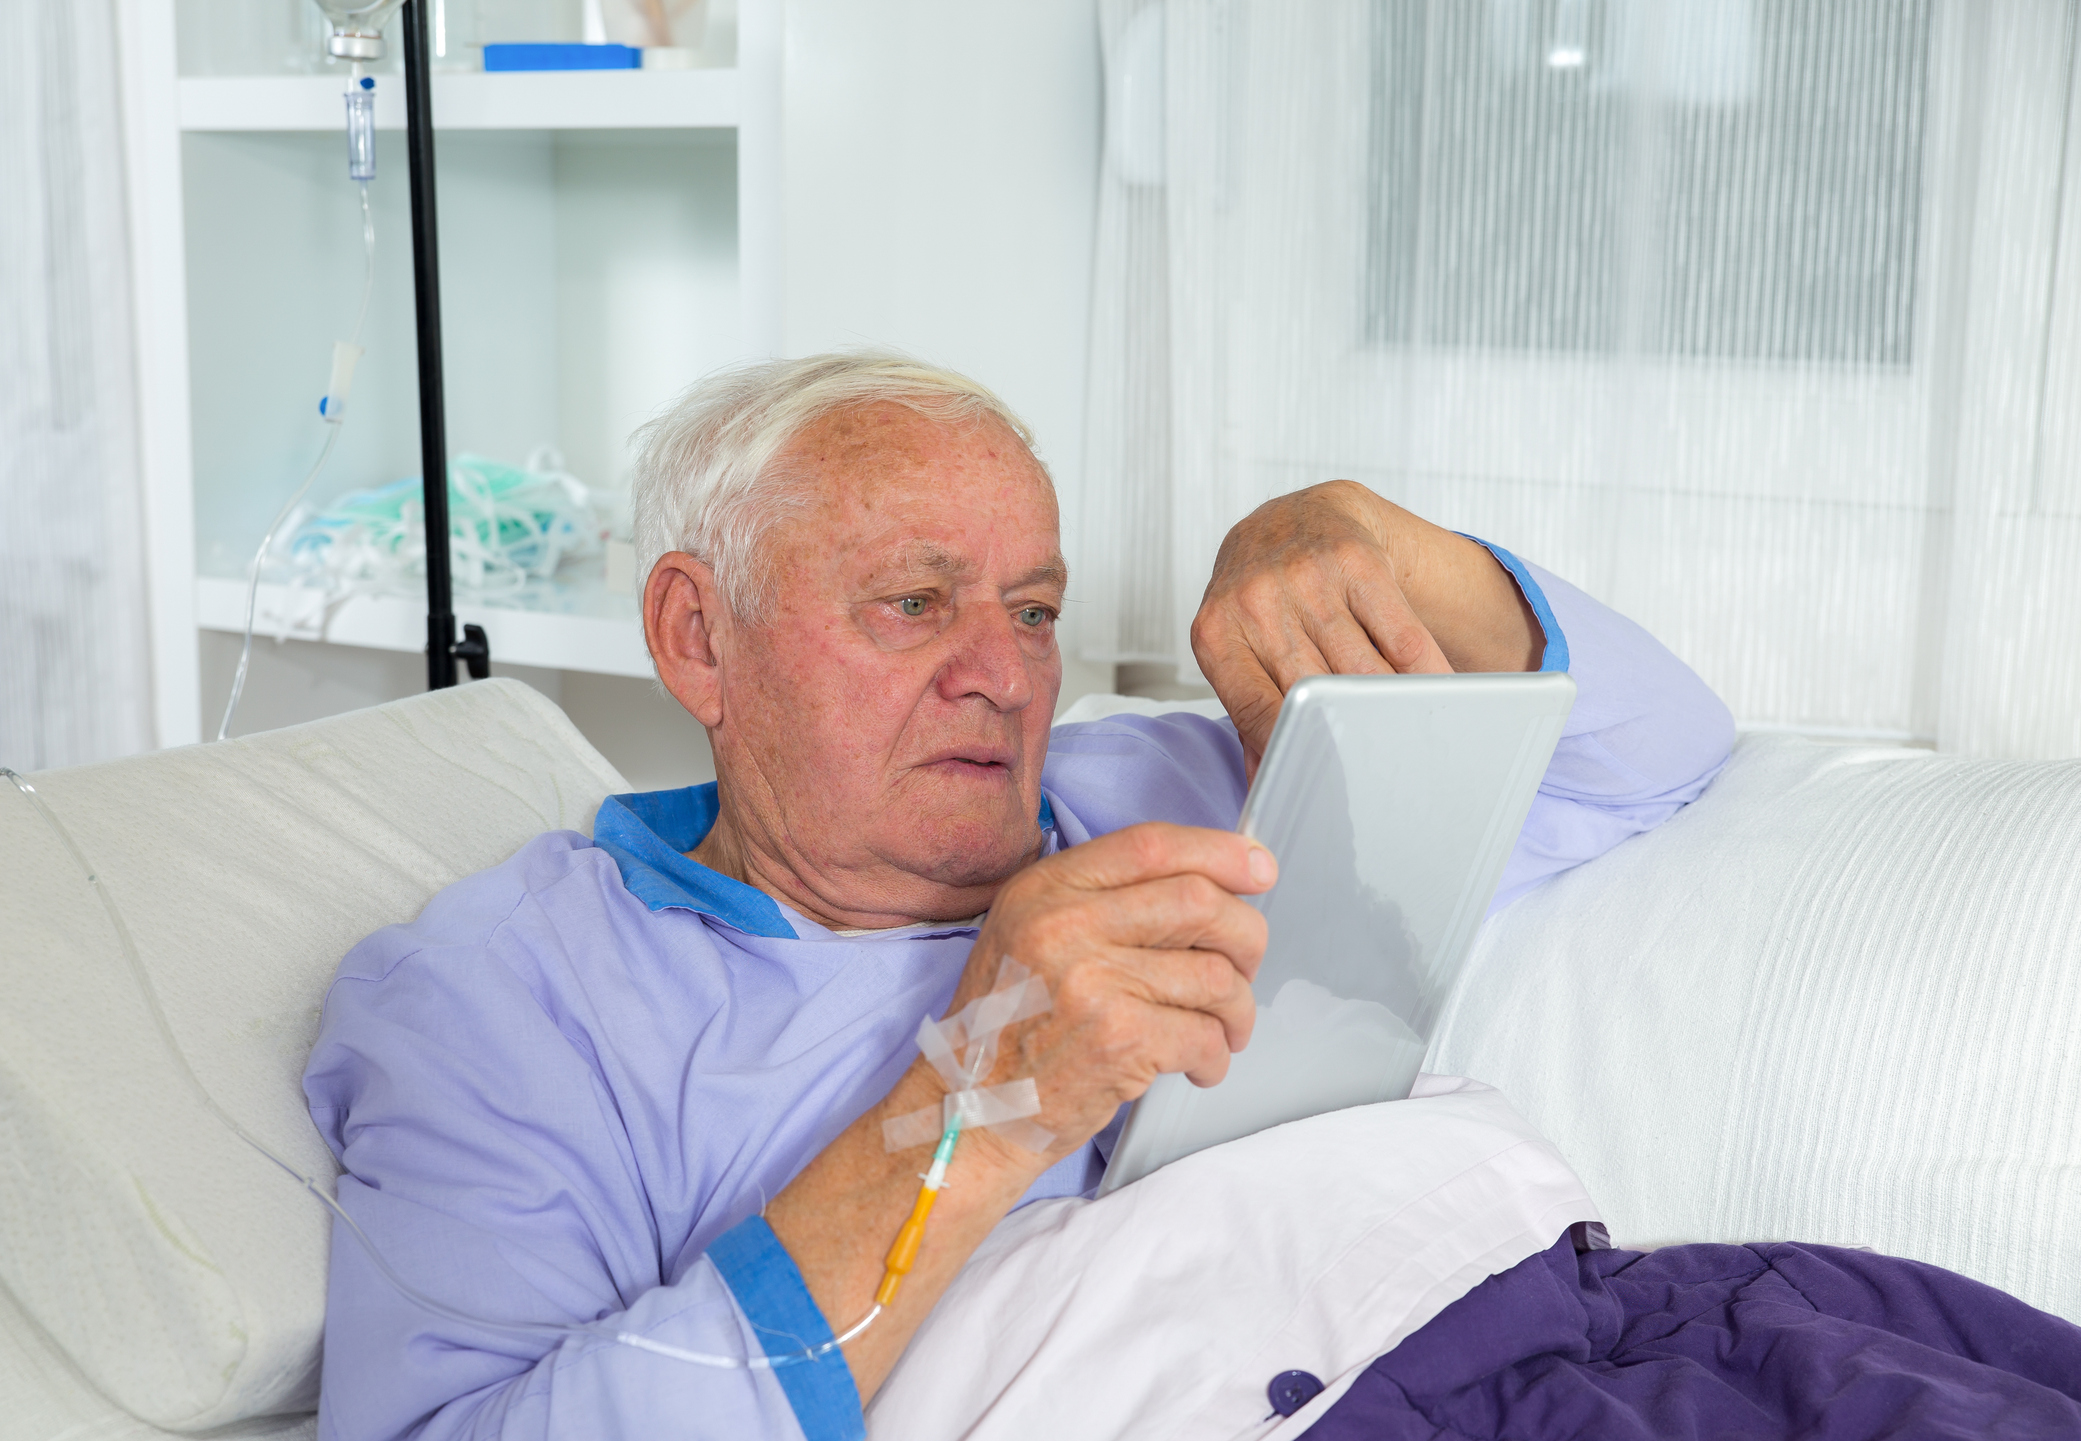 An elderly man with an infusion uses a tablet